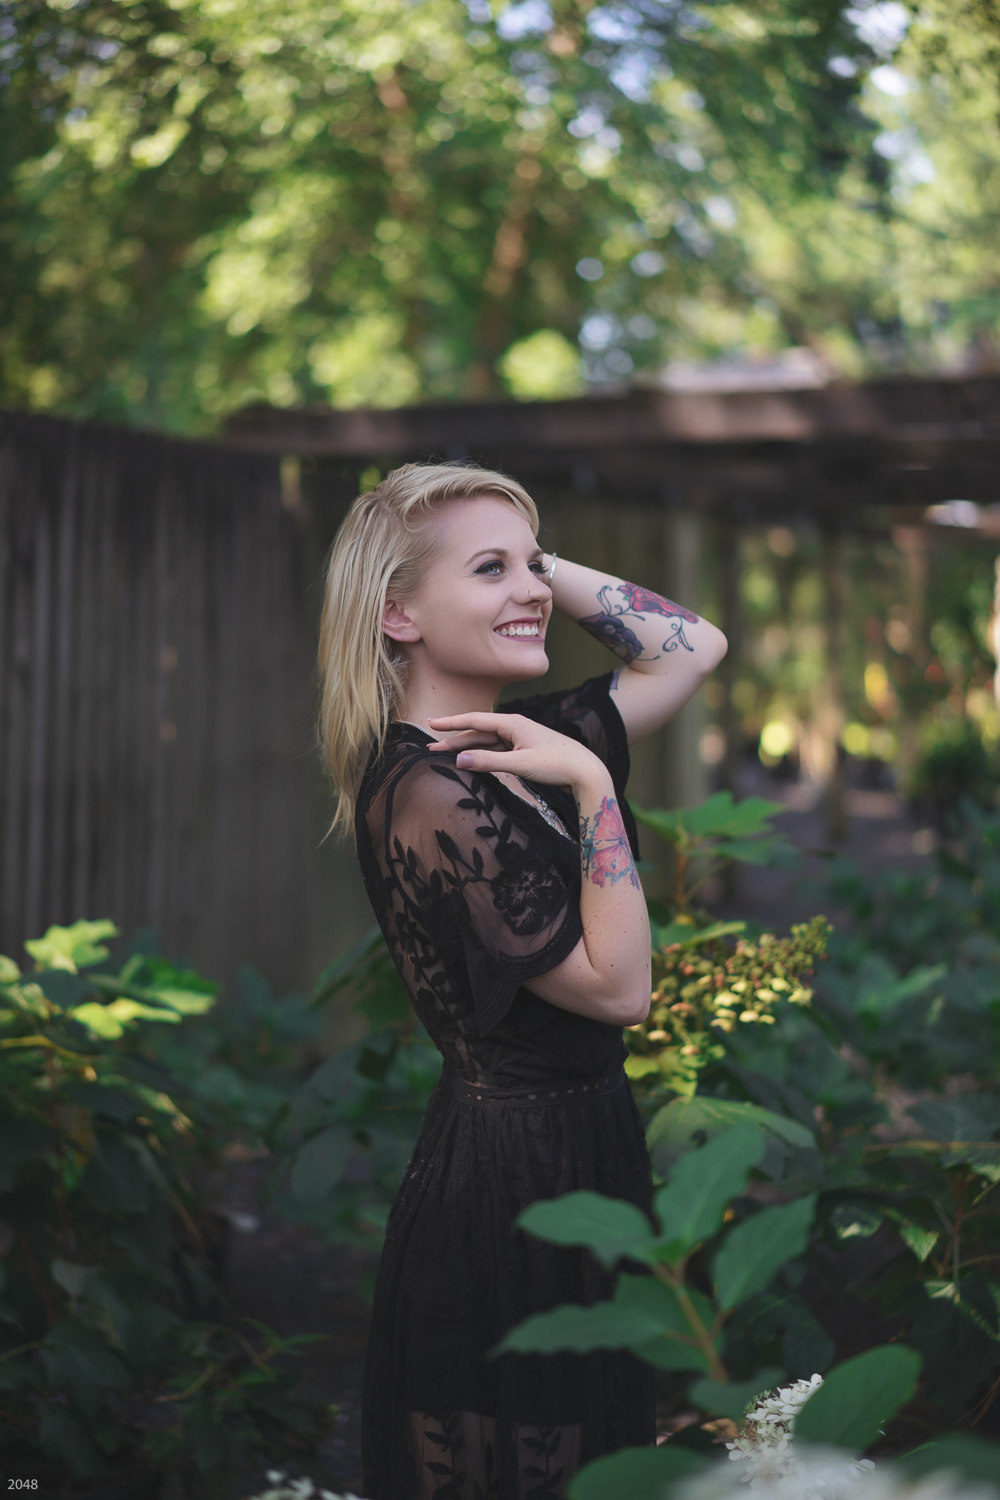 Model:Aly Nelson  Cameras used: Sony A7  Lens:Sonnar T* FE 55mm F1.8 ZA